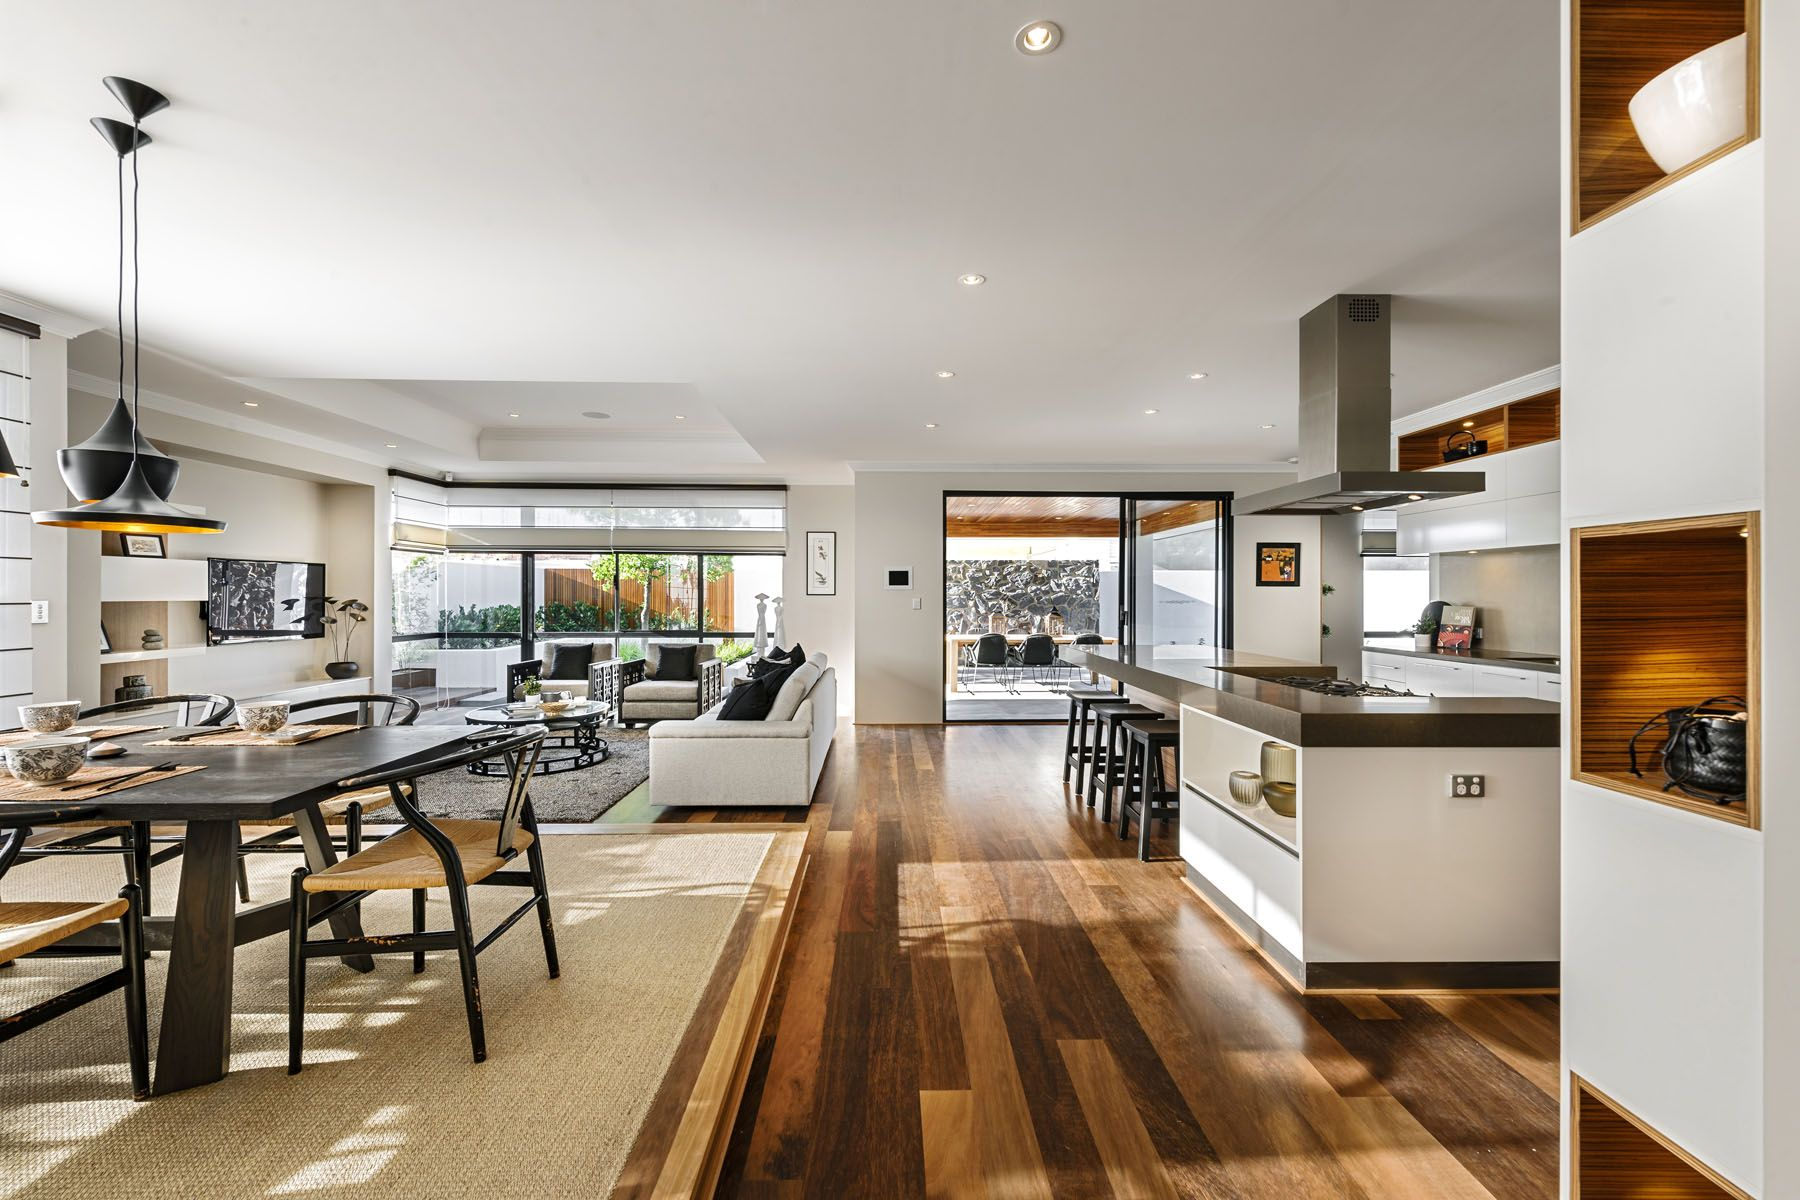 The Azumi. http://www.wbhomes.com.au/our-homes/browse-homes/azumi ...